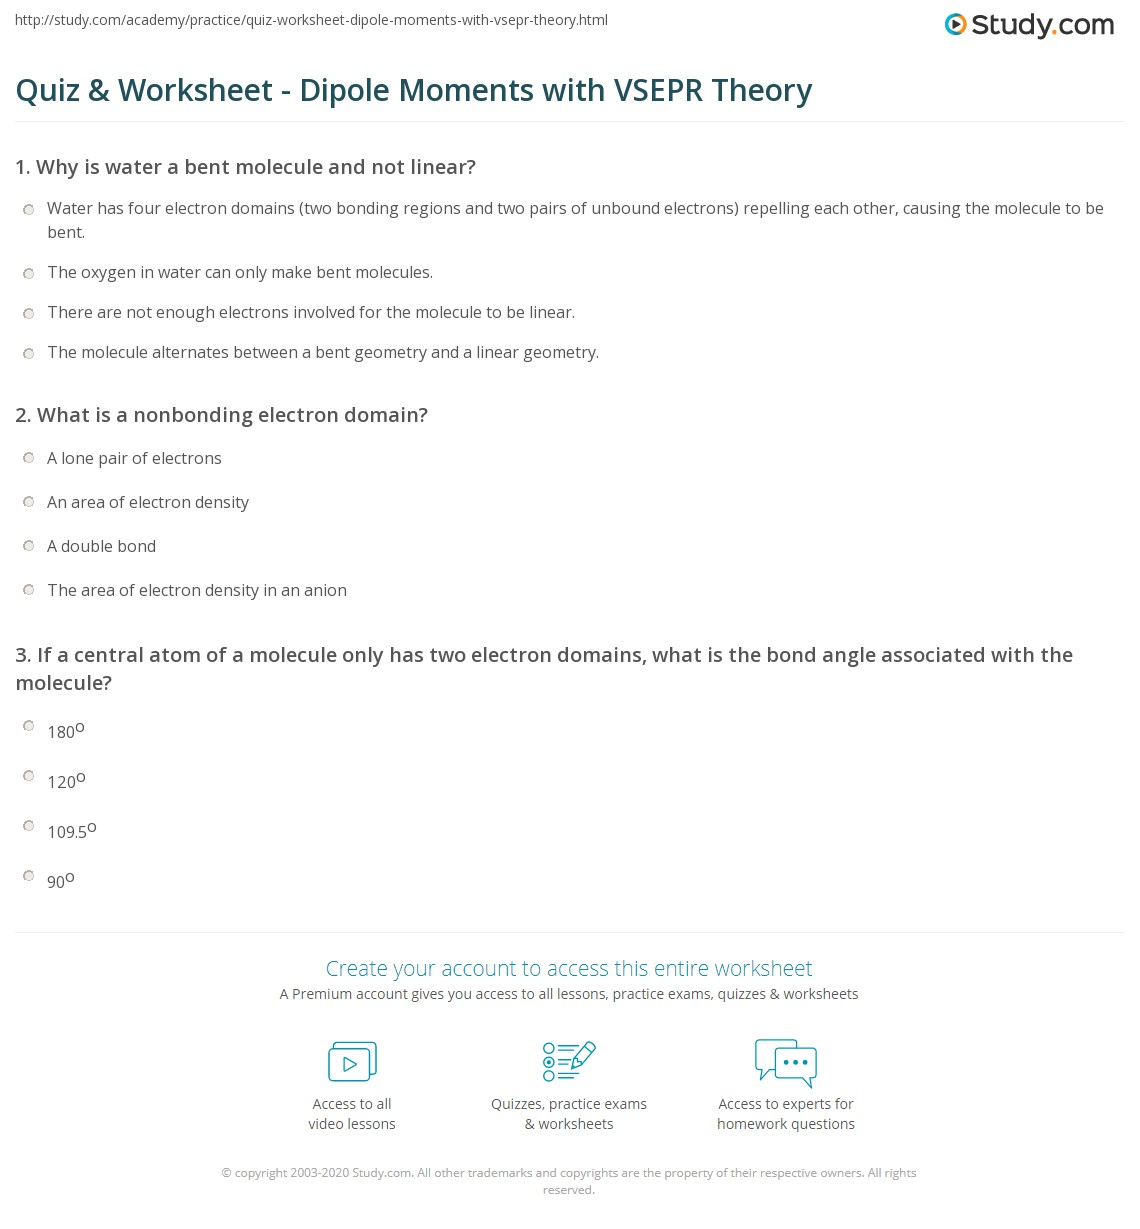 Quiz & Worksheet - Dipole Moments with VSEPR Theory | Study.com